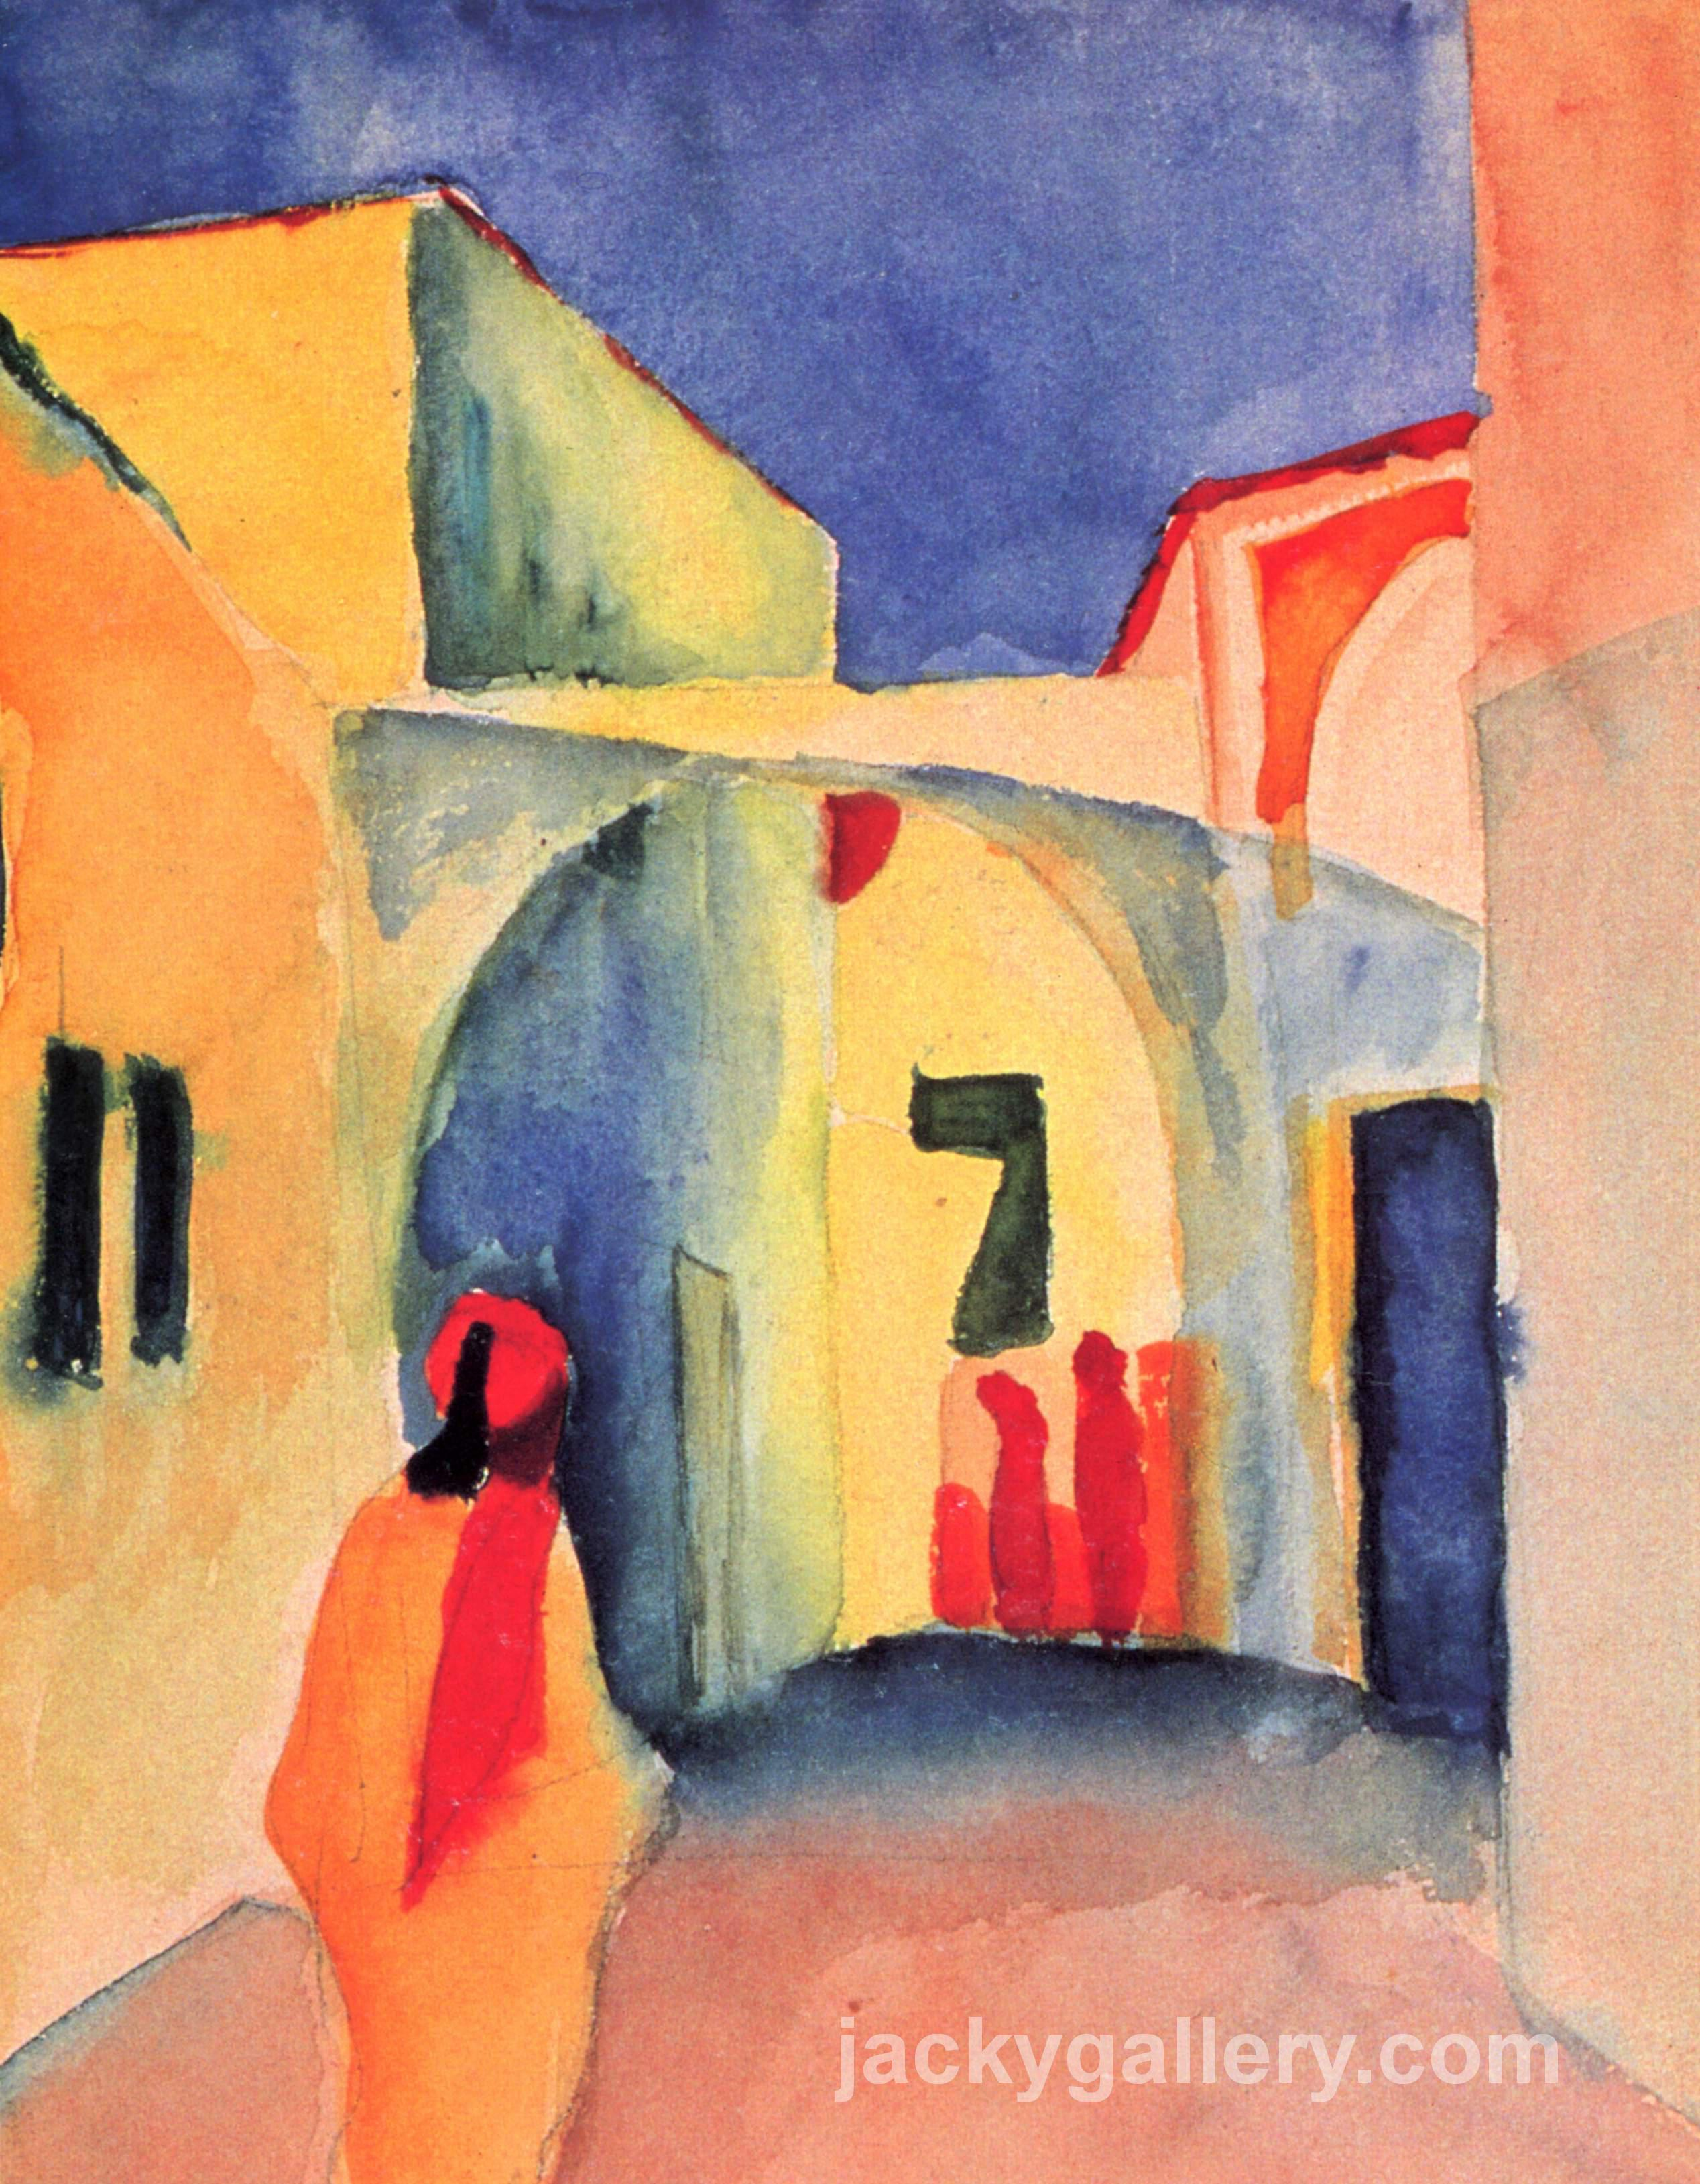 A Glance Down an Alley, August Macke painting